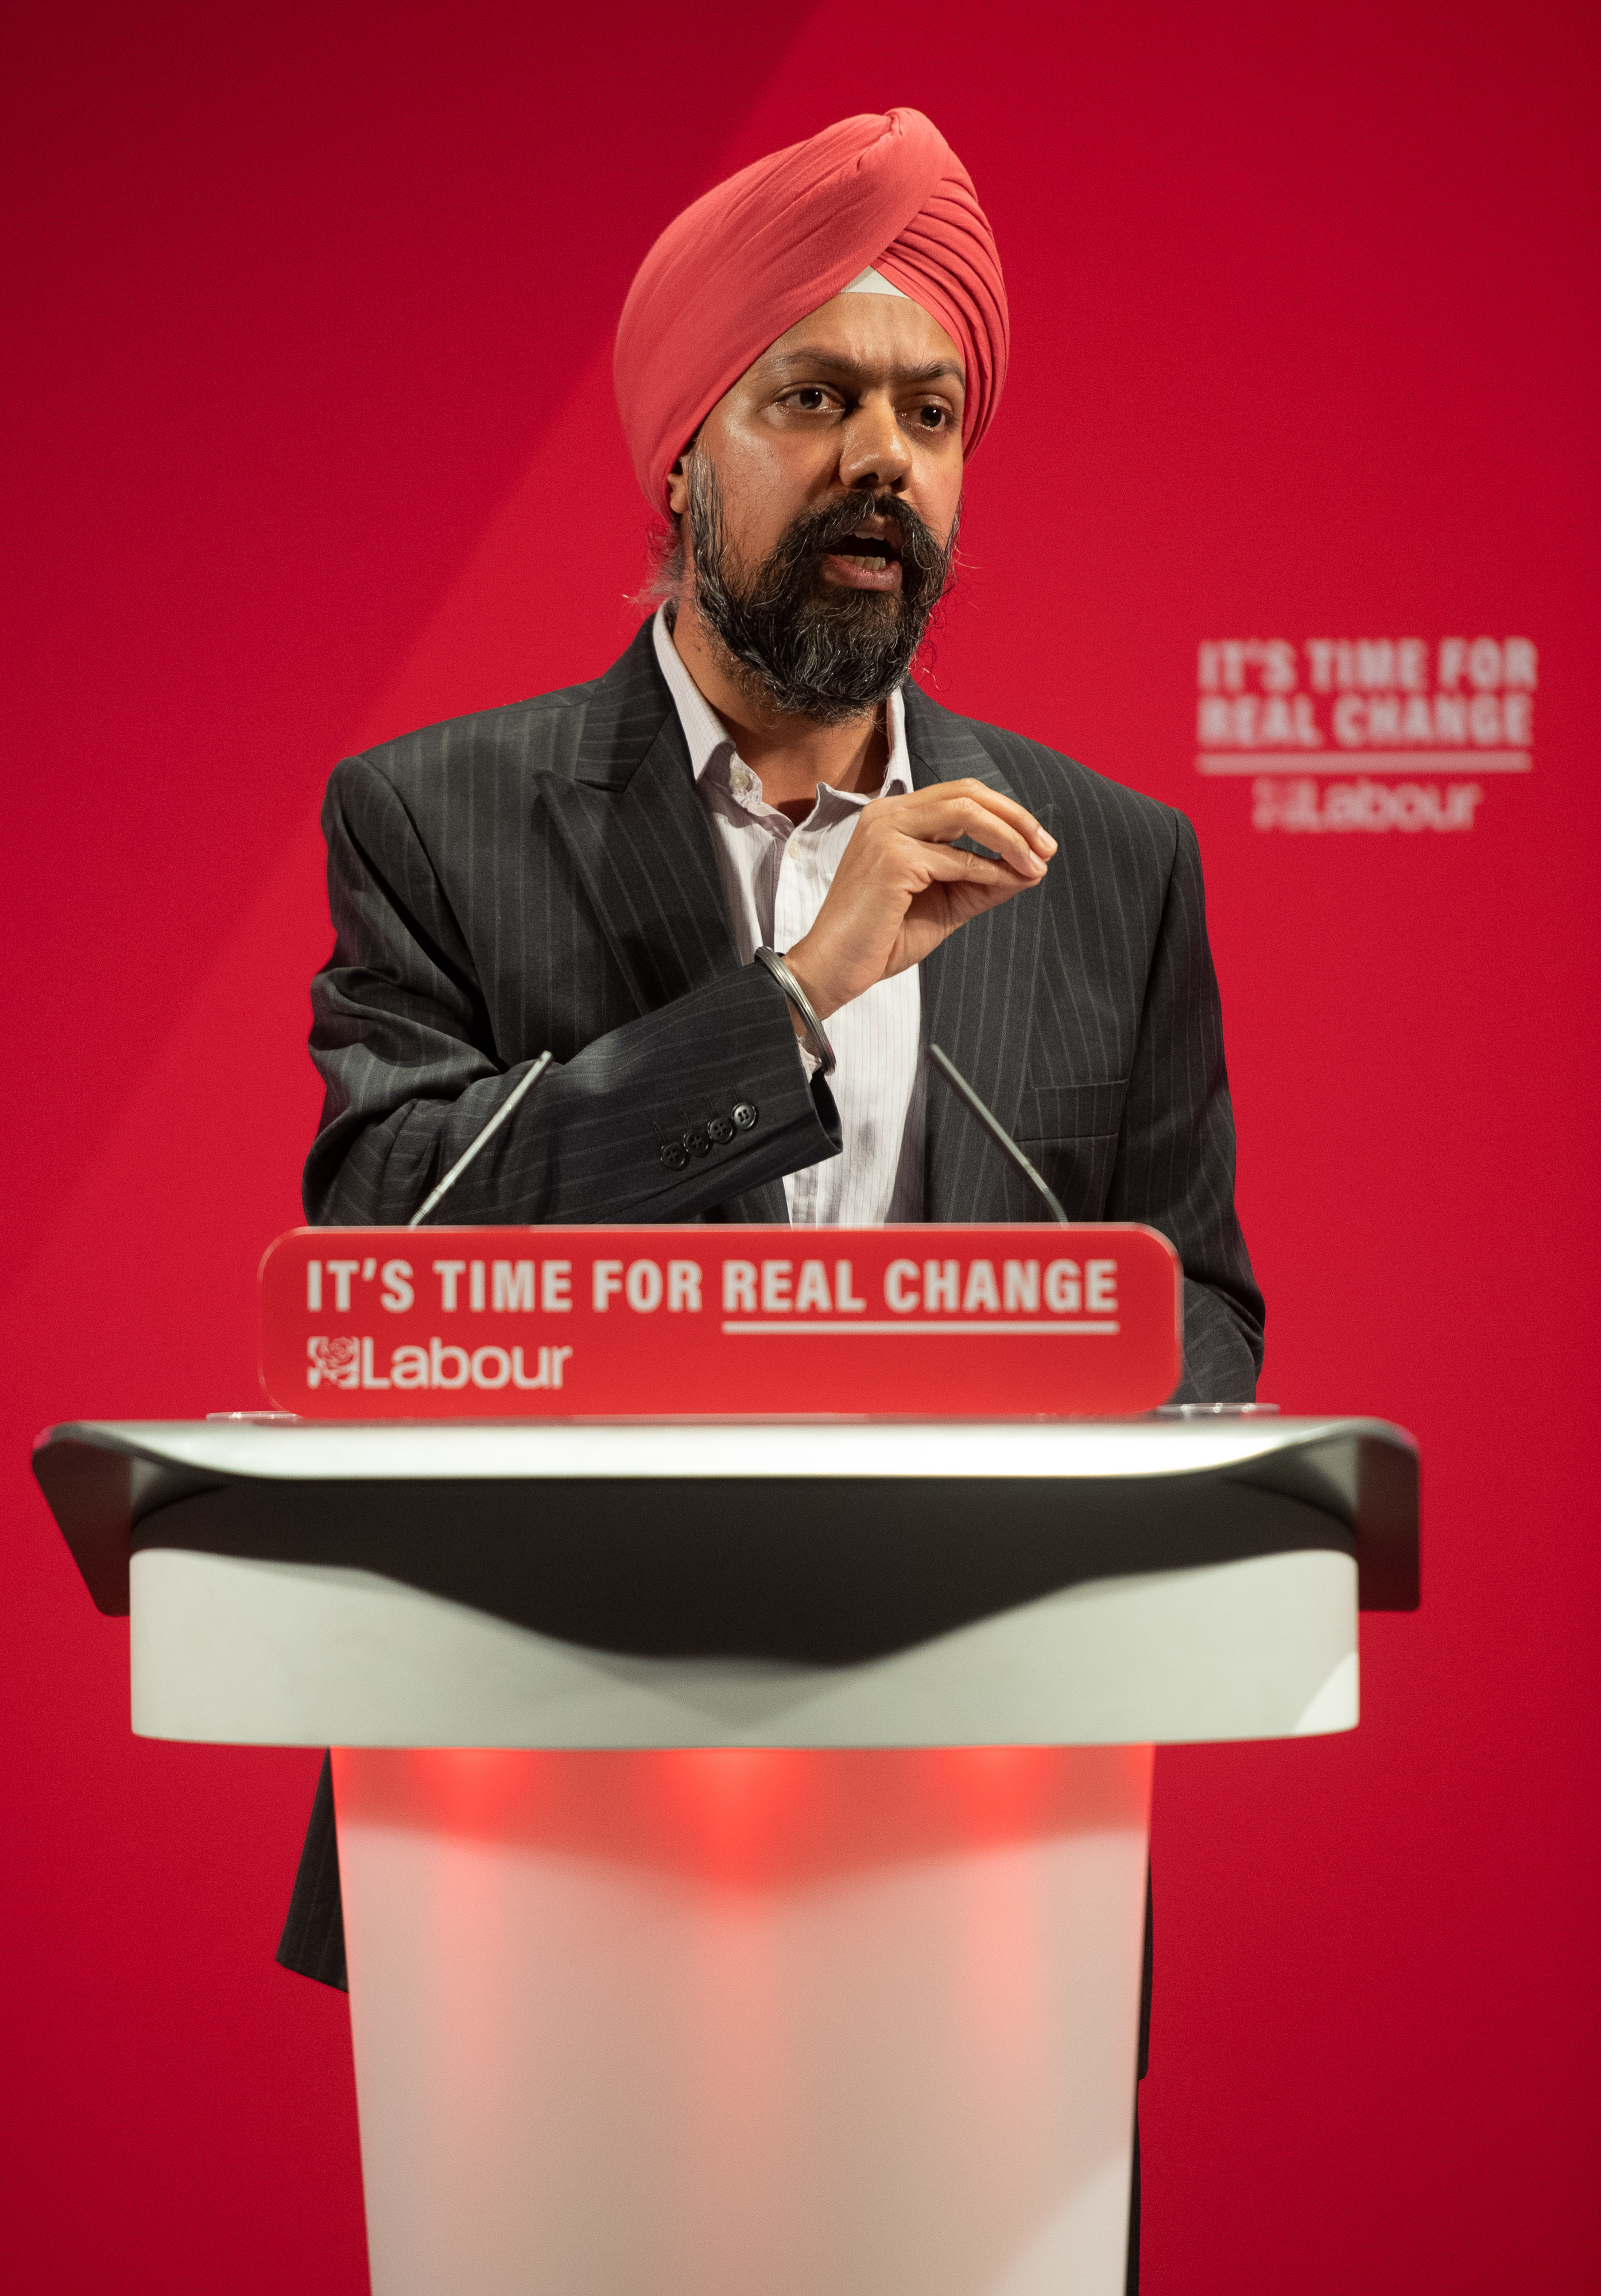 Tan Dhesi, Labour Party parliamentary candidate for Slough at the launch of the Labour Party race and faith manifesto at the Bernie Grant Arts Centre, north London.